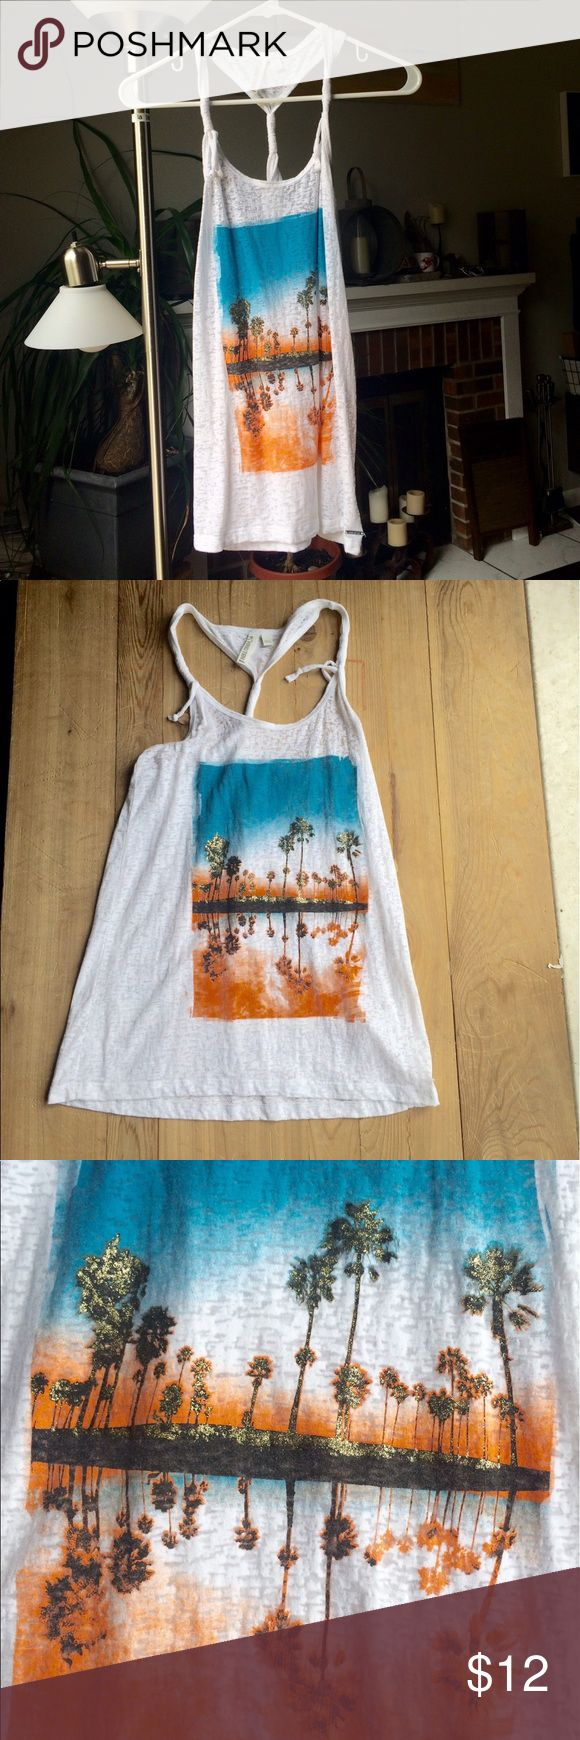 Hangten racerback twisted tank Best worn with a bandeau and an attitude, the blue and orange palm trees glitter with gold and begs to be worn on a warm summer night. Light material with a twisted back and tassel straps. Can be dressed up with skinny jeans, heels, and a moto jacket or can be worn for Gym, Tan, Laundry. Hang Ten Tops Tank Tops